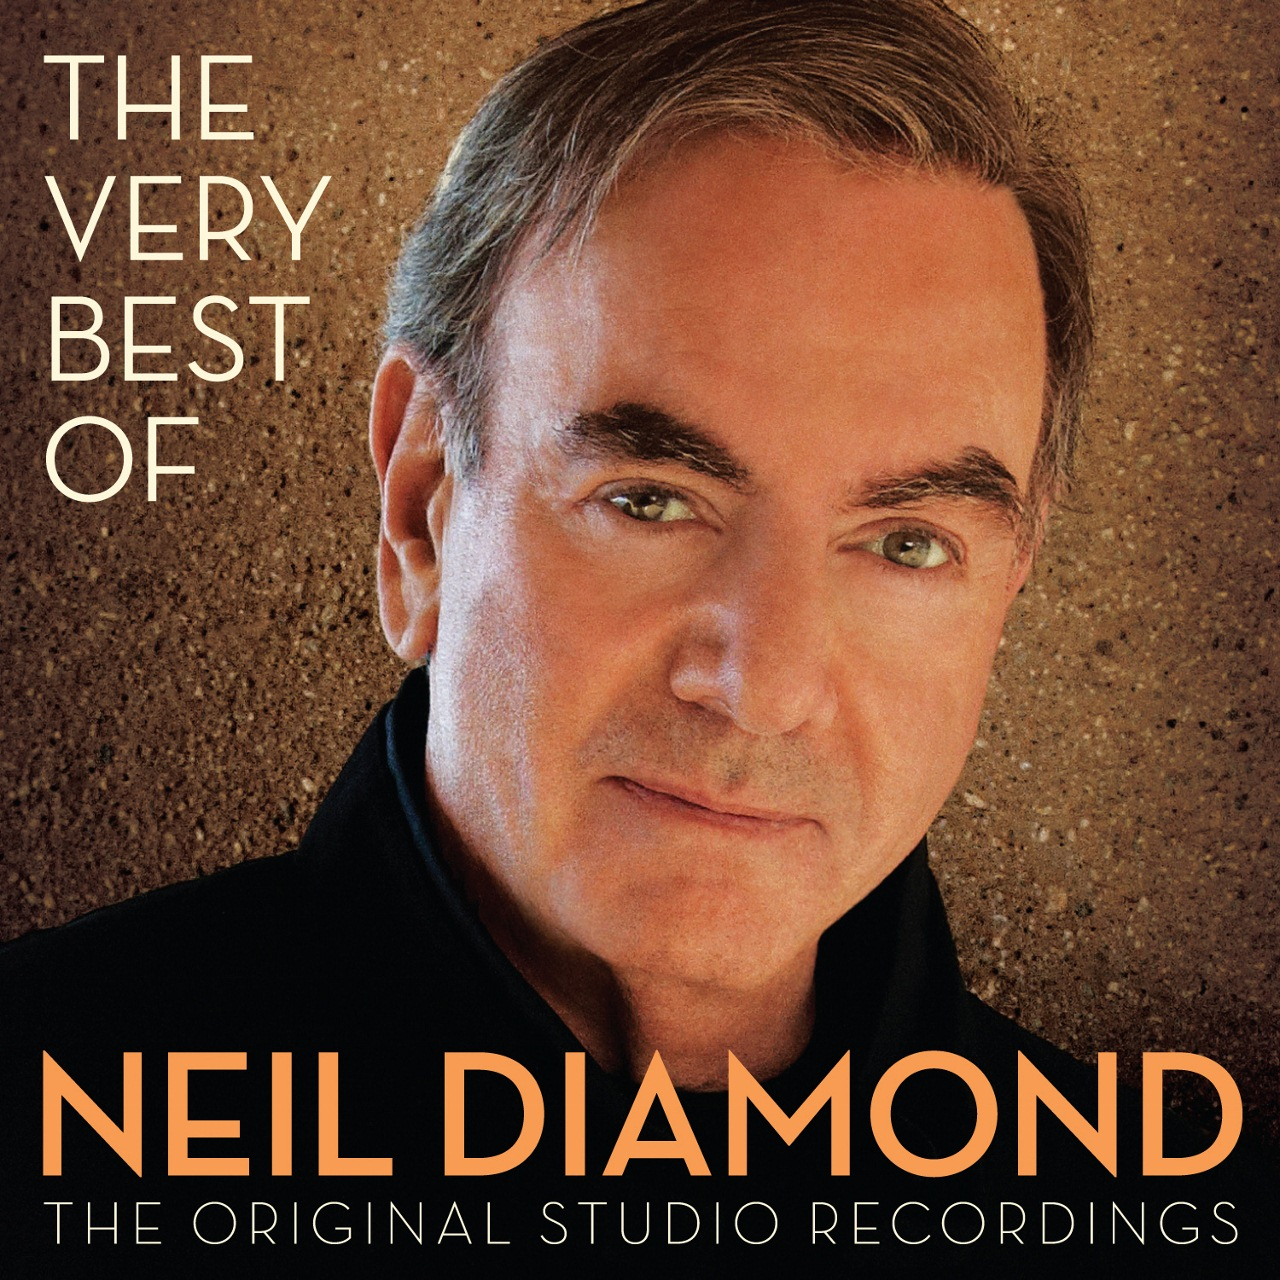 Neil diamond is a jew born in the shadow of the second world war to